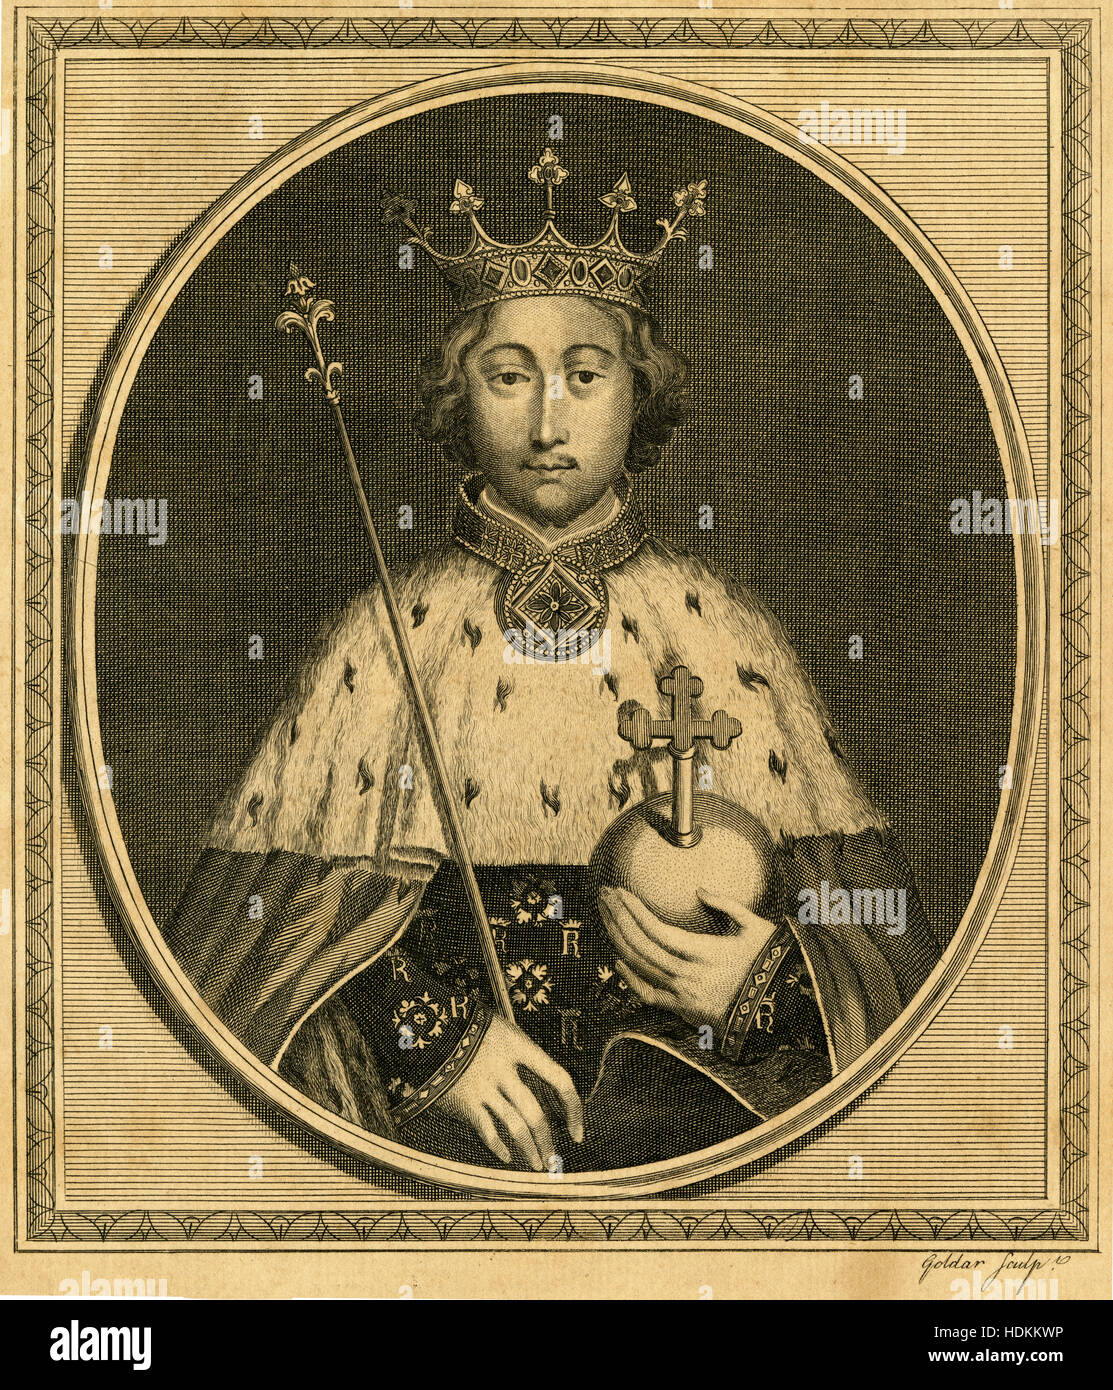 Antique 1785 engraving, King Richard II. Richard II (1367-1400), also known as Richard of Bordeaux, was King of - Stock Image